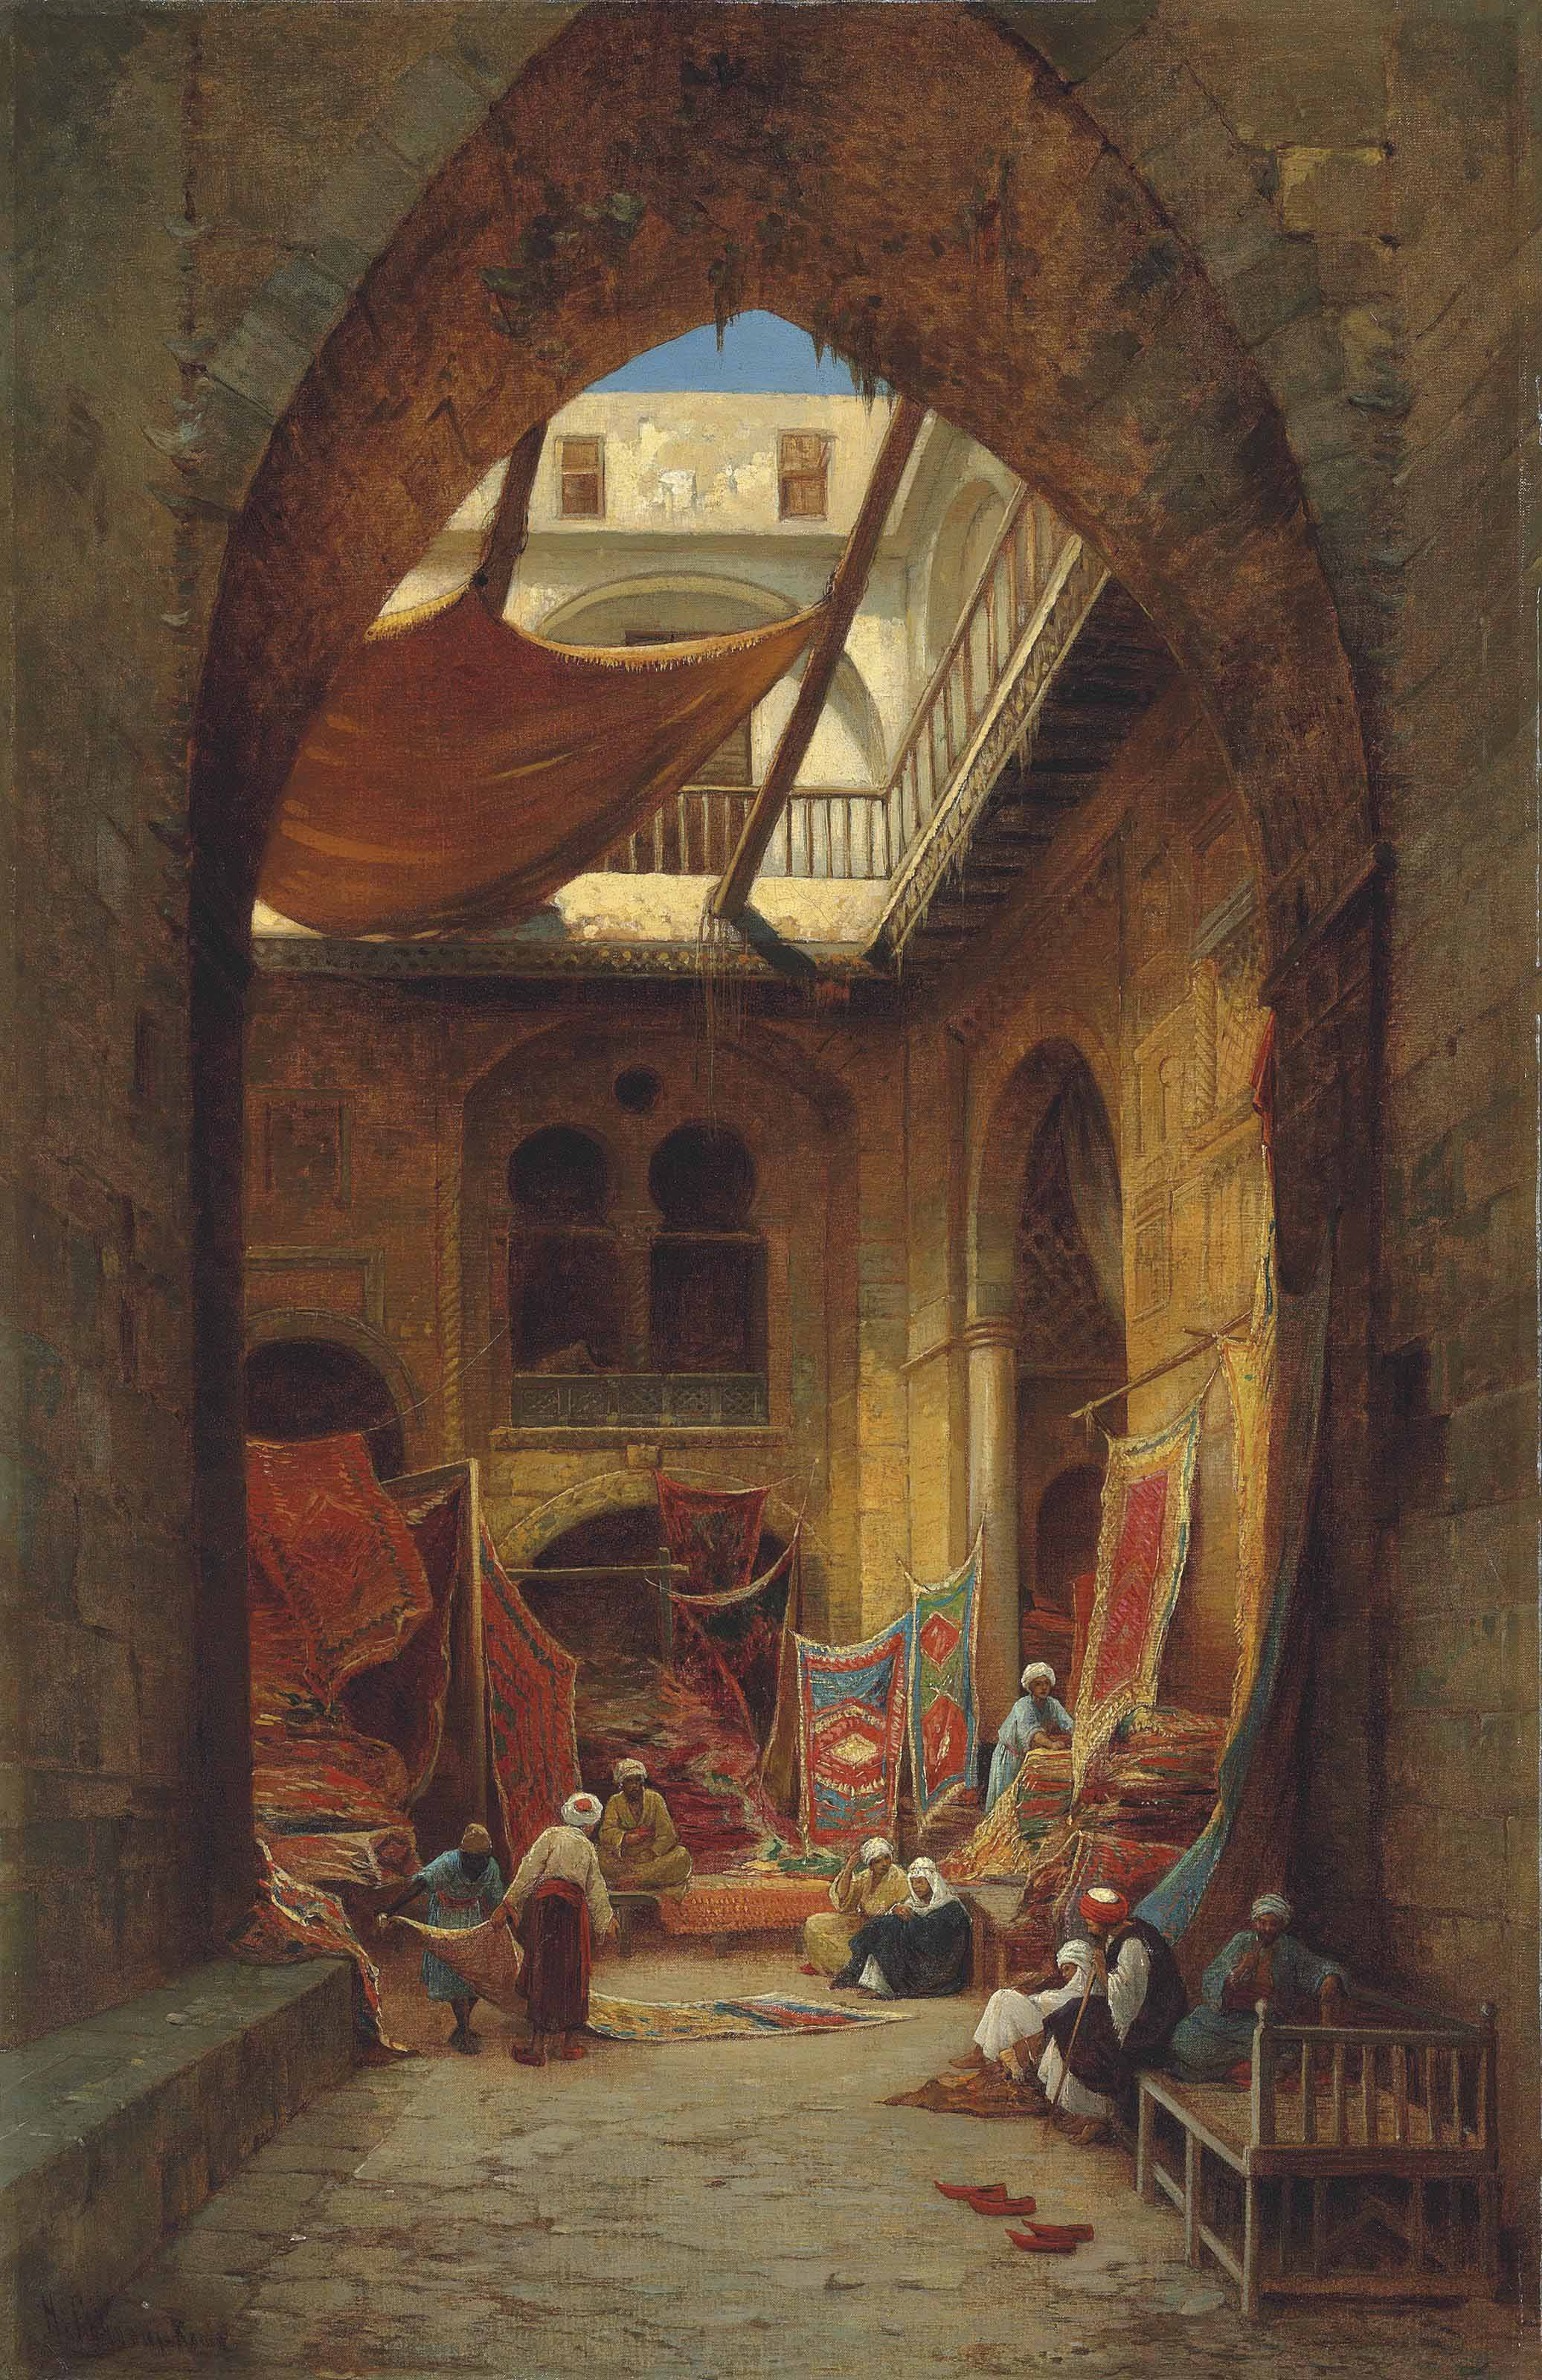 The rug merchants